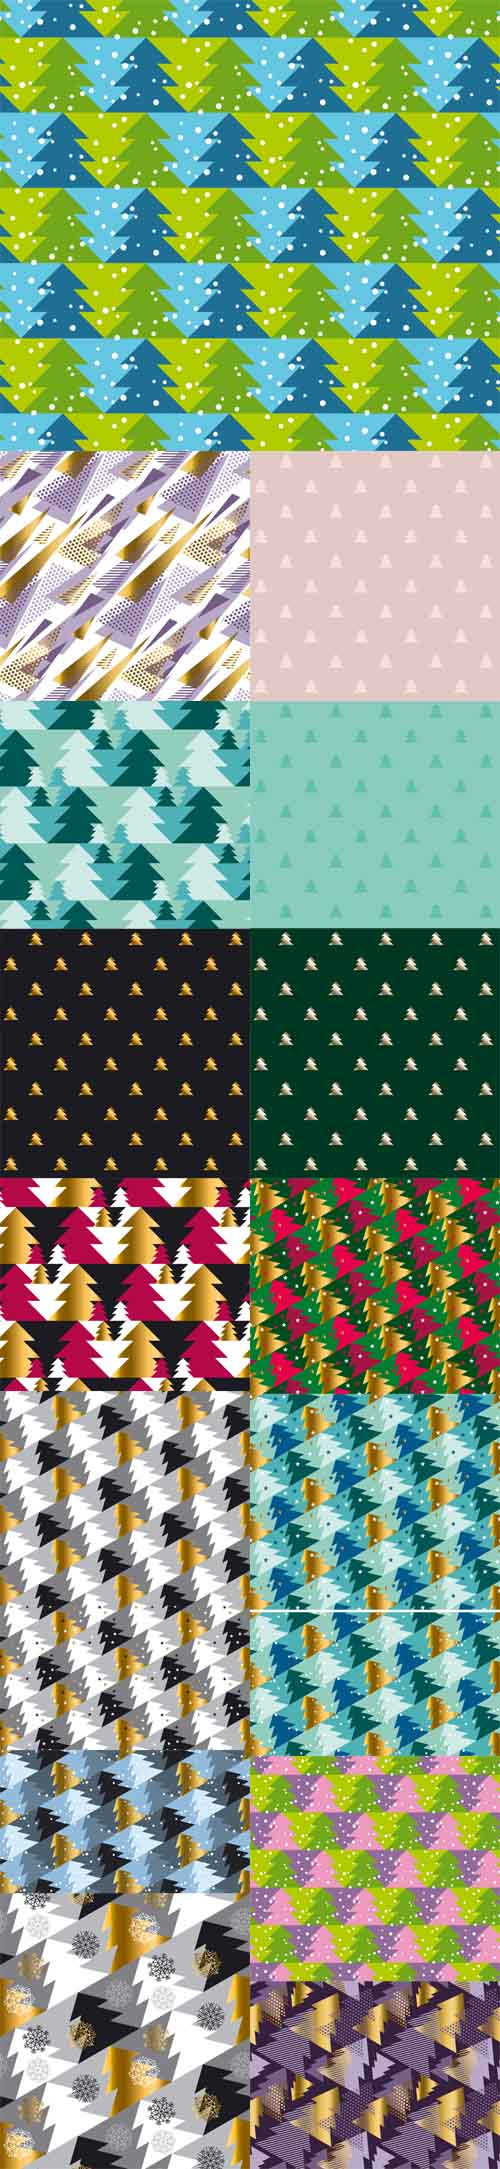 Vector Christmas Tree Seamless Modern Patterns » NitroGFX ...